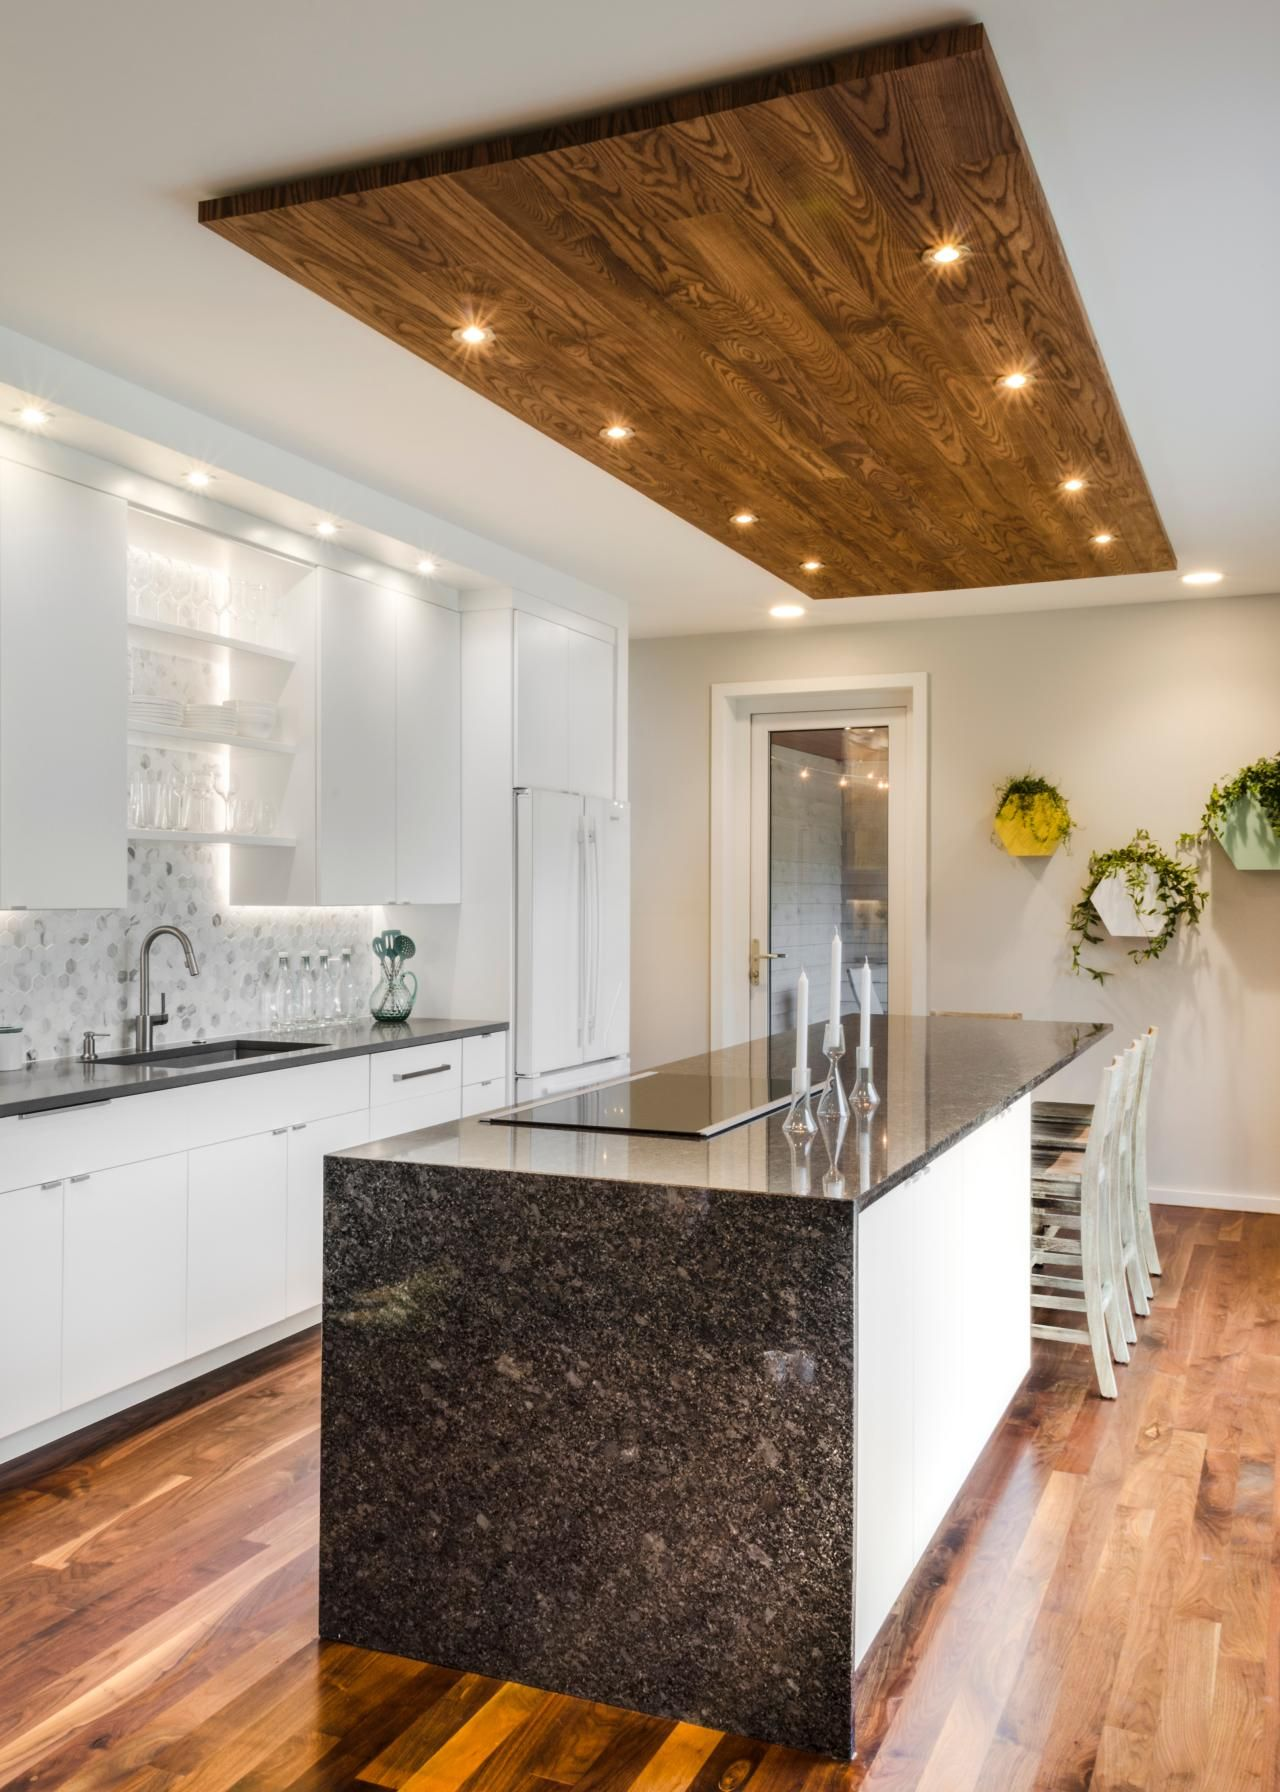 how to cut ceiling tiles for recessed lighting